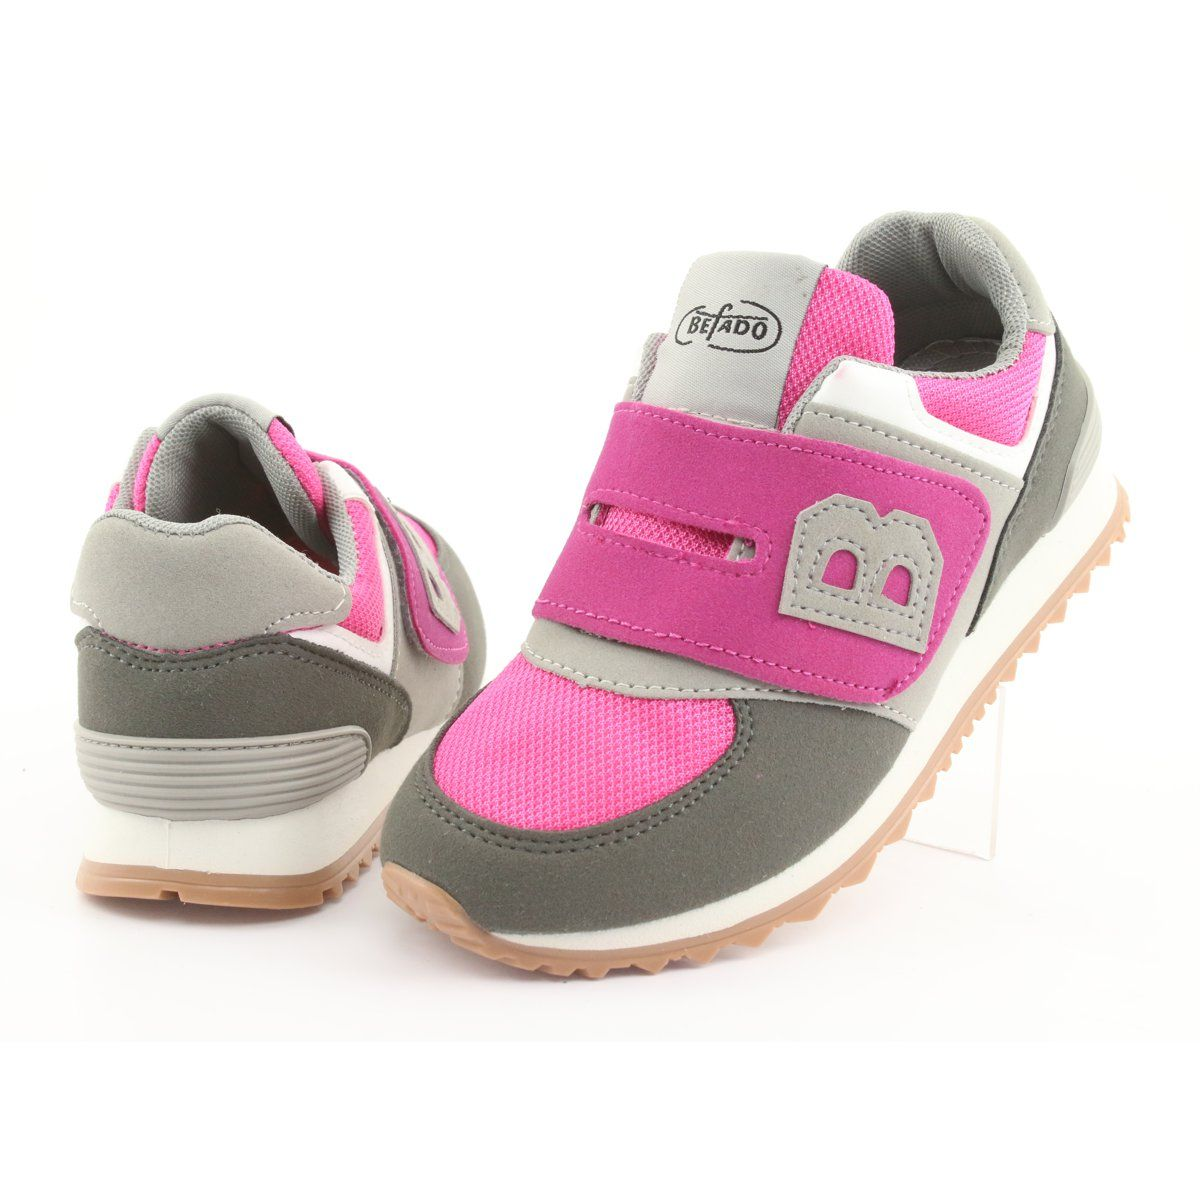 Befado Children S Shoes Up To 23 Cm 516y039 Pink Grey Childrens Shoes Kid Shoes Shoes